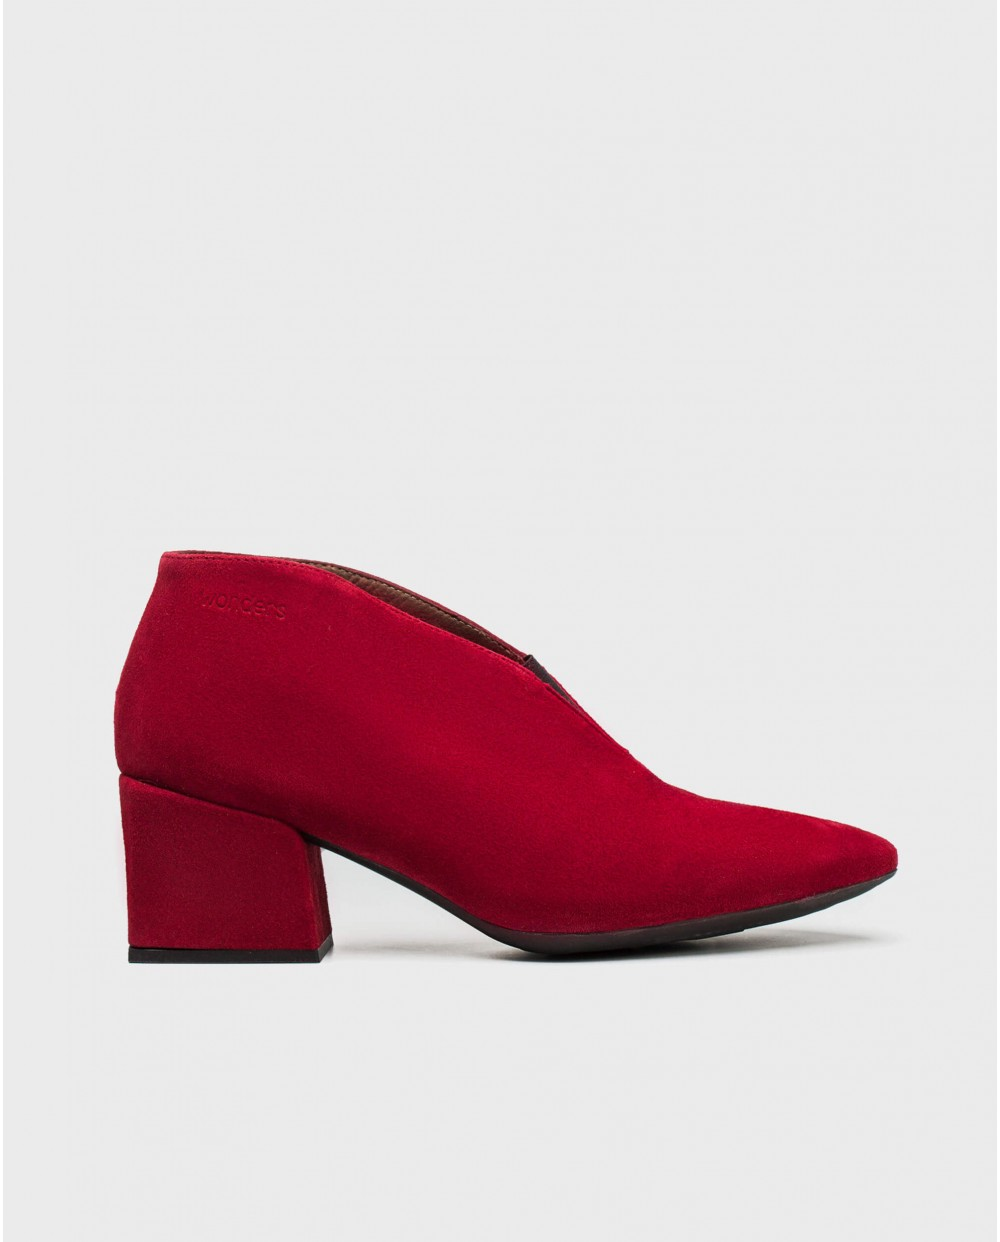 Wonders-Heels-Suede leather ankle shoe with elastic closure